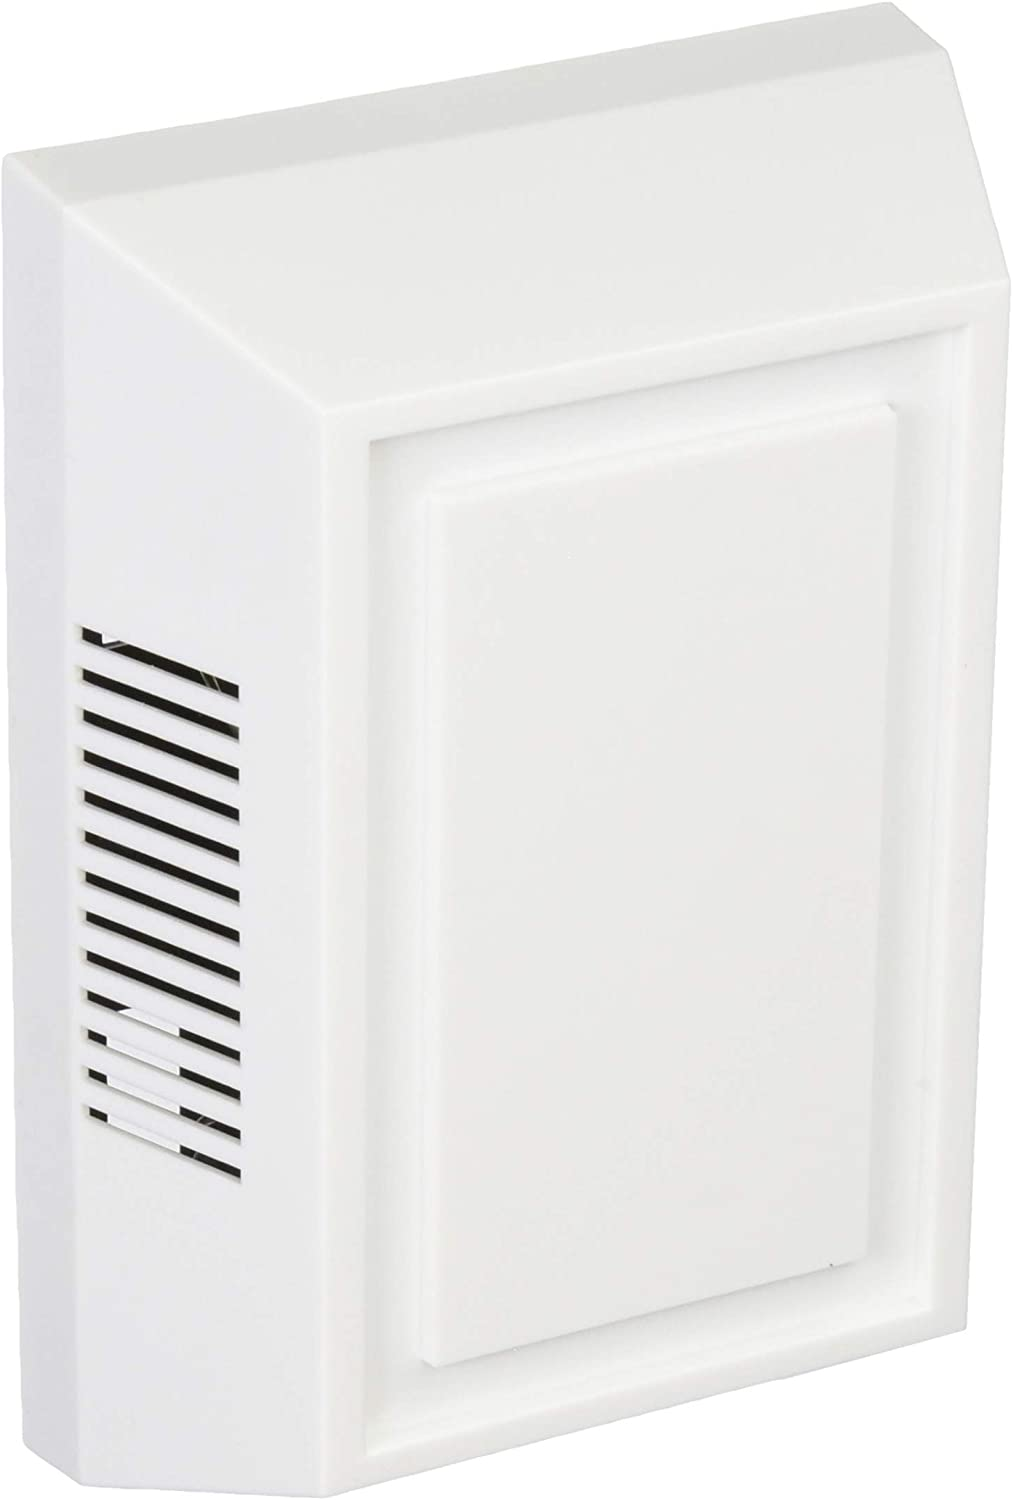 IQ America DW-2402 Wired Door Chime with Modern Design Cover Replaces DW-2405 and DW-2403A 2-Note or 1-Note White 6